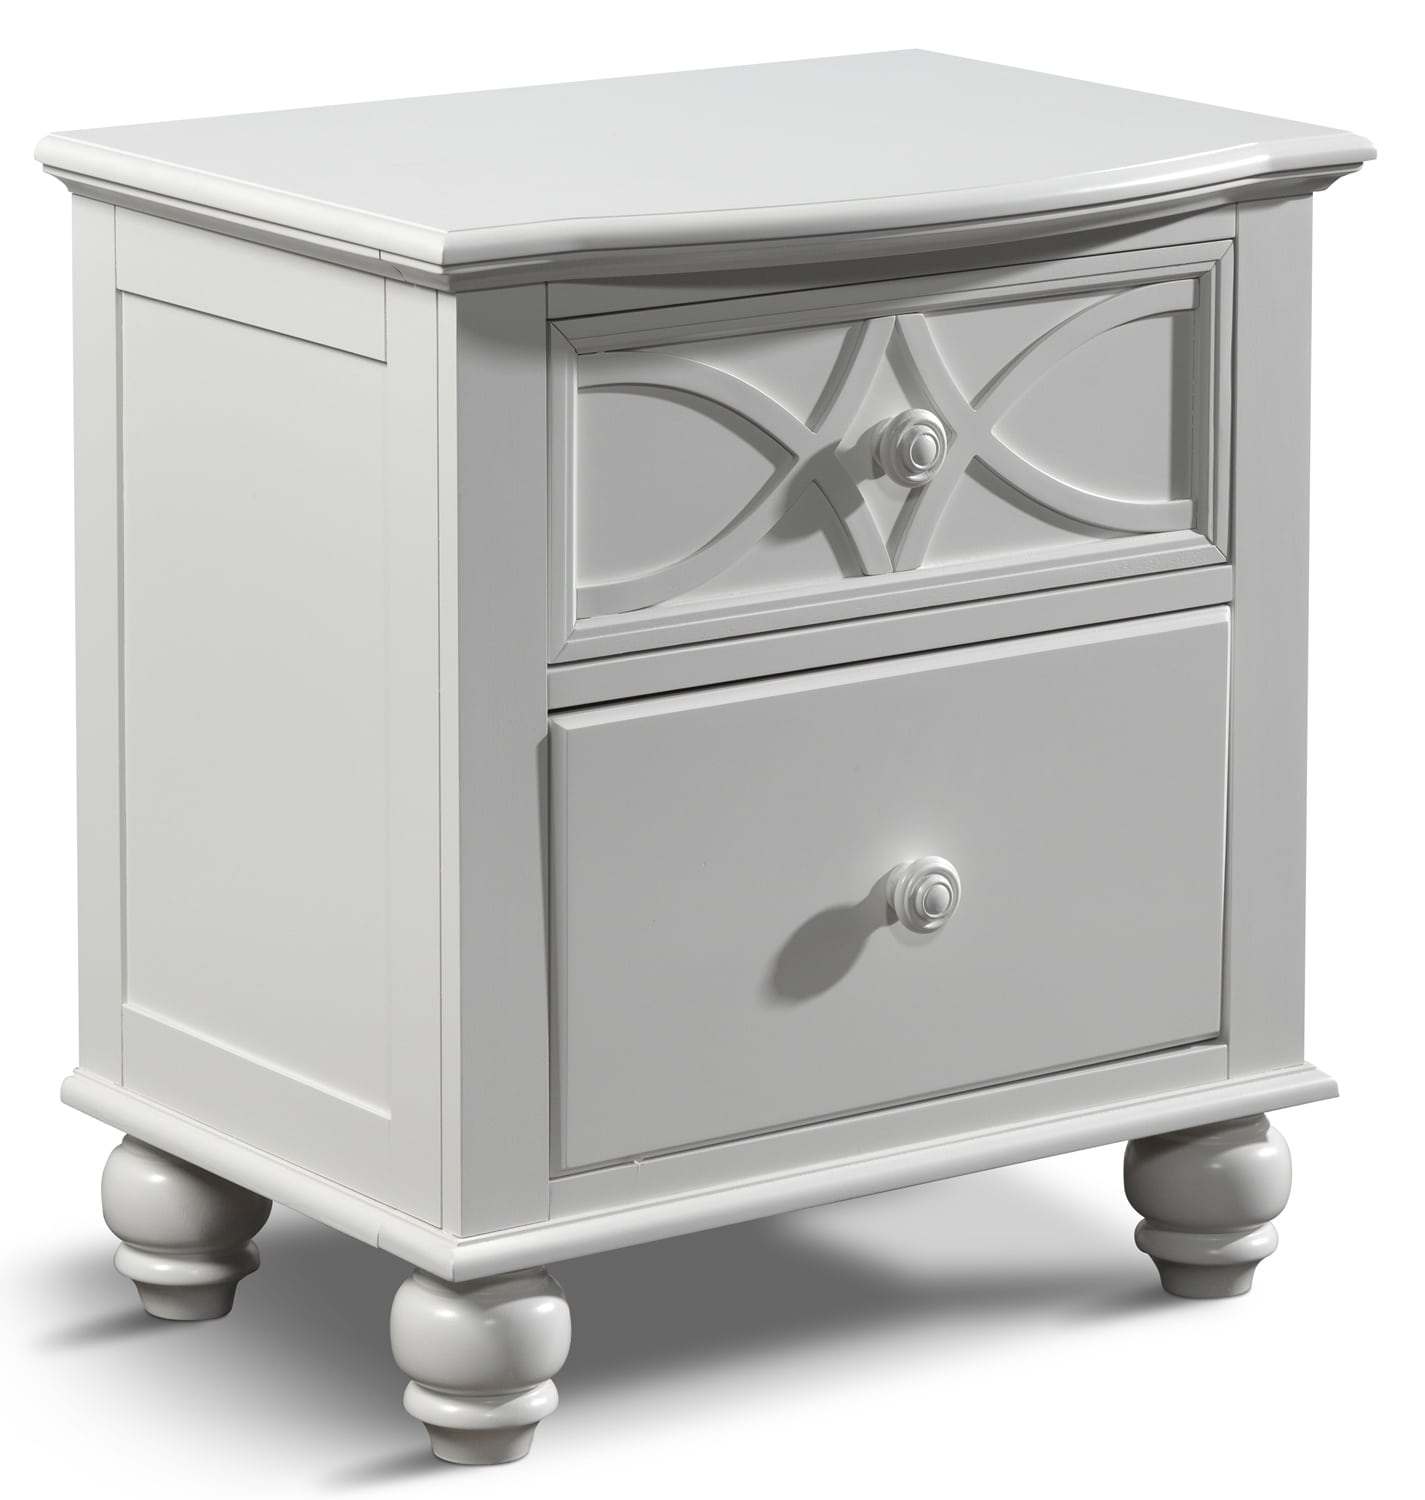 Bedroom Furniture - West Coast Night Table - White